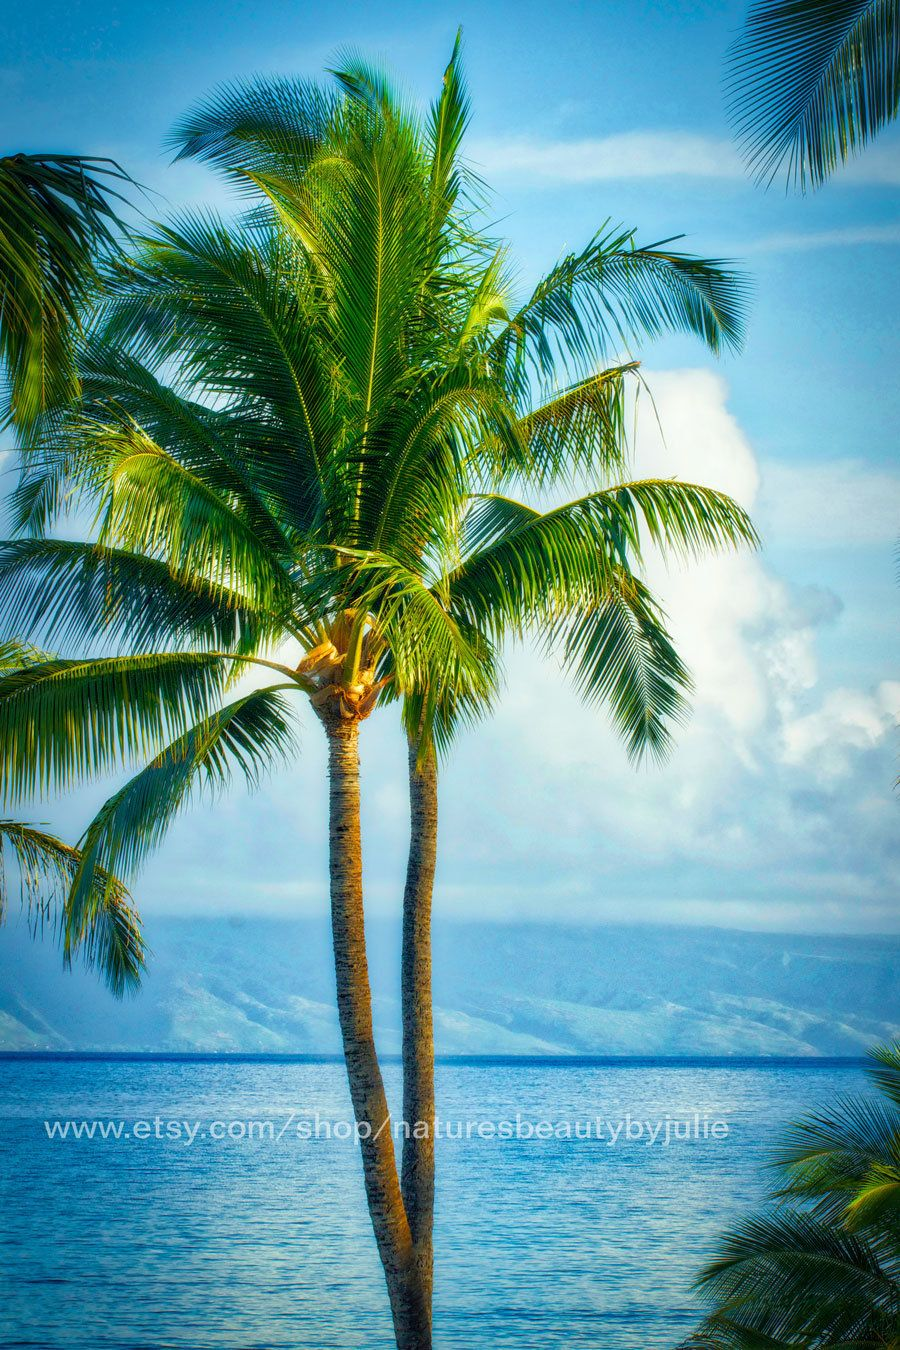 Palm Tree Photography Print Palm Tree Wall Art Beach Scene Ocean Art Landscape Photography Palm Tree Wall Art Palm Tree Photography Landscape Photography